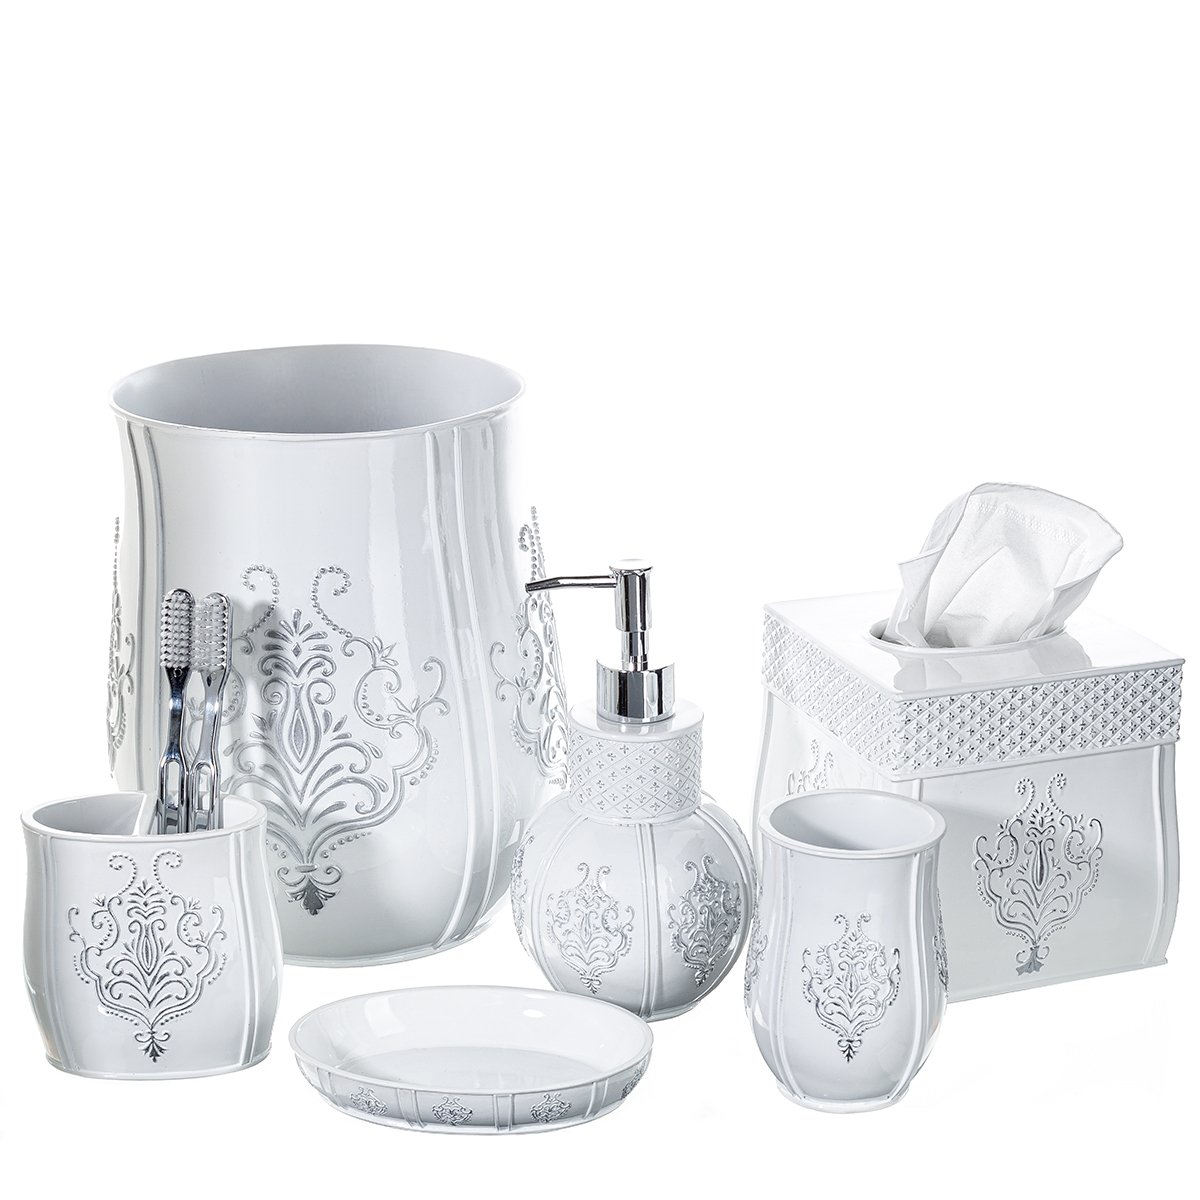 Vintage White Bathroom Accessories, 4 Piece Bathroom Accessories Set, Bathroom Set Features French Fleur-De-Lis Motifs, Soap Dispenser, Toothbrush Holder, Tumbler & Soap Dish - Bath Gift Set